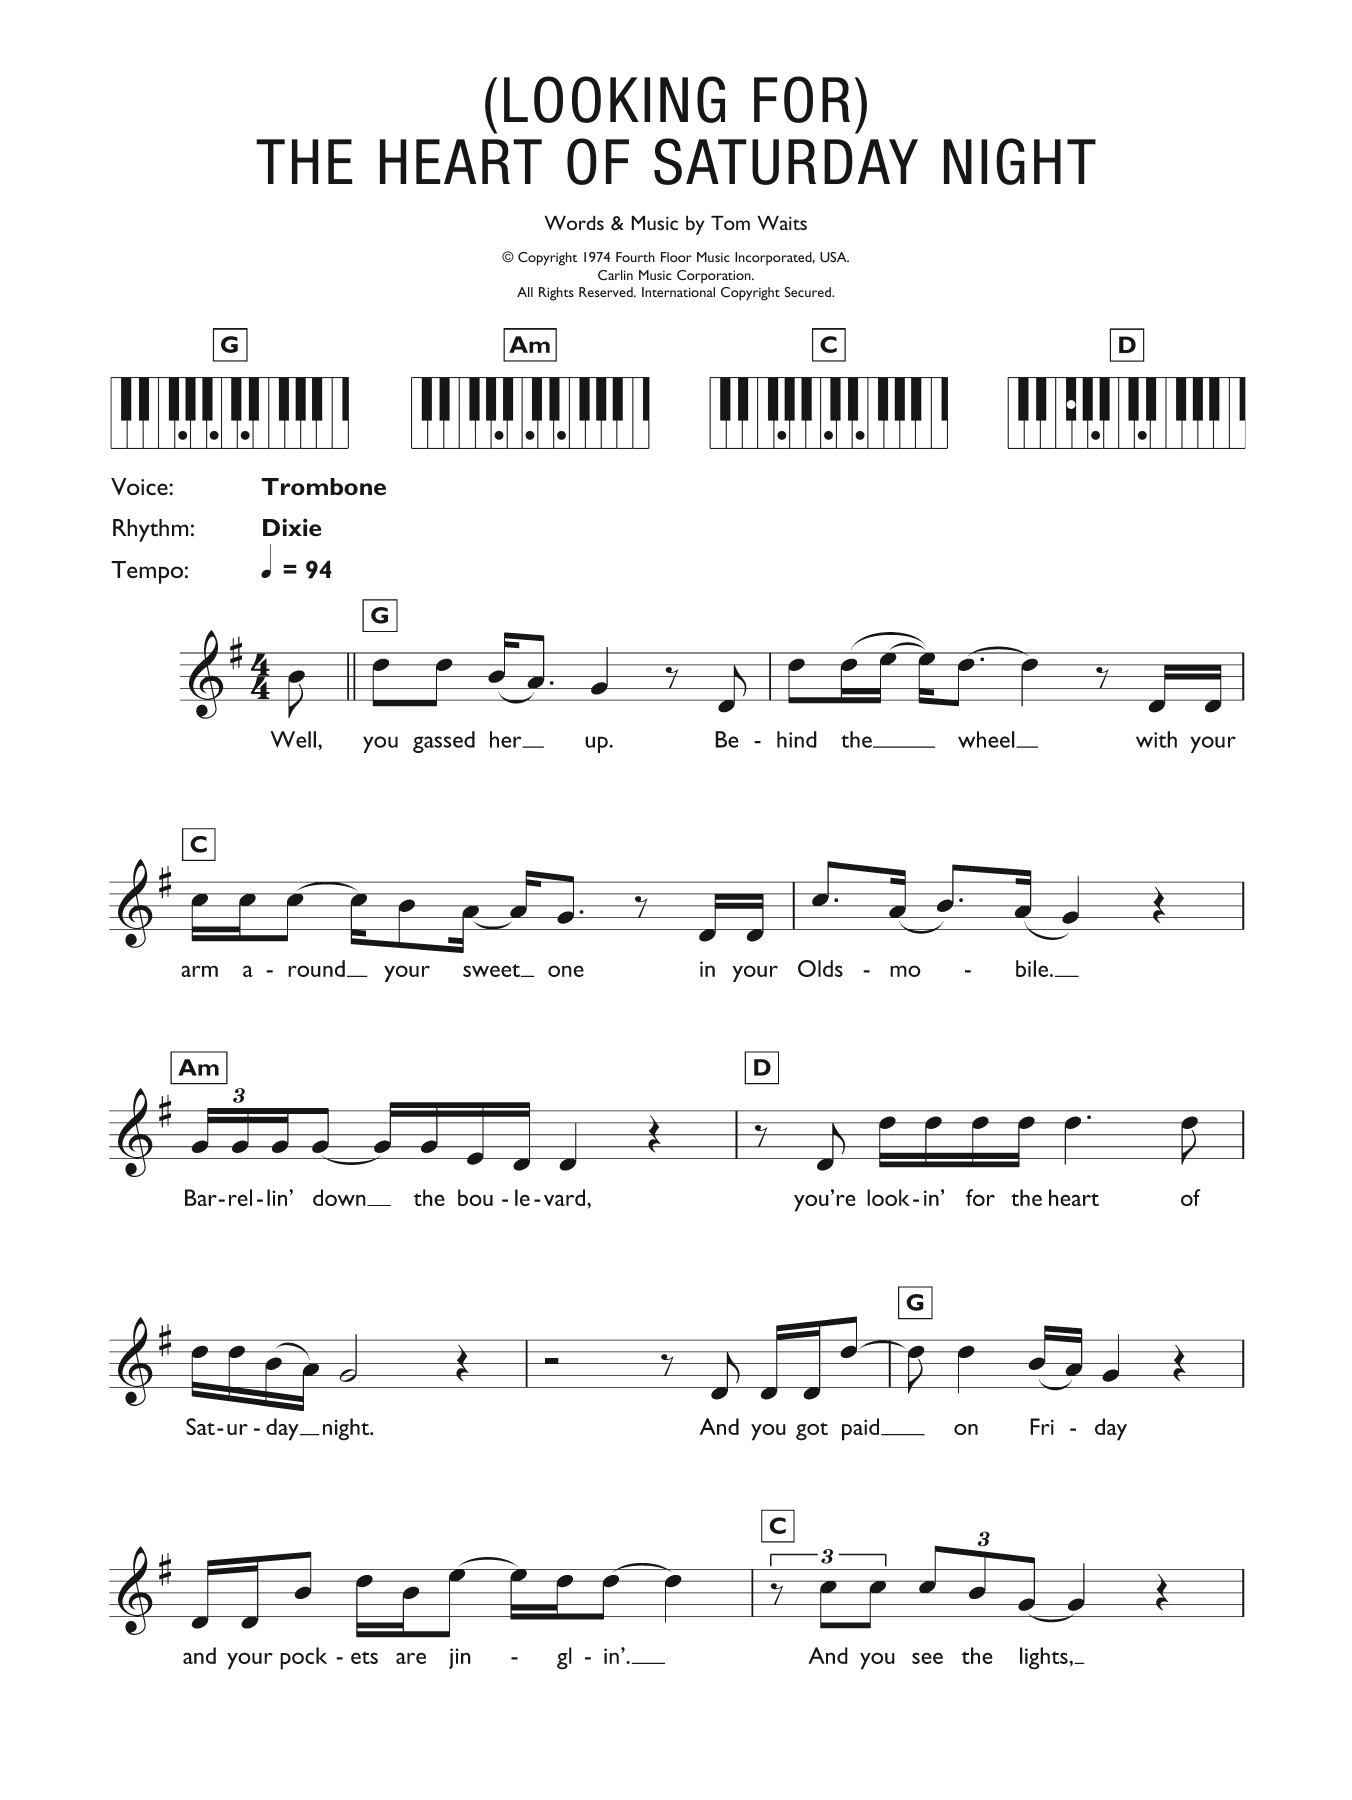 Sheet music digital files to print licensed piano chordslyrics sheet music digital files to print licensed piano chordslyrics digital sheet music hexwebz Gallery